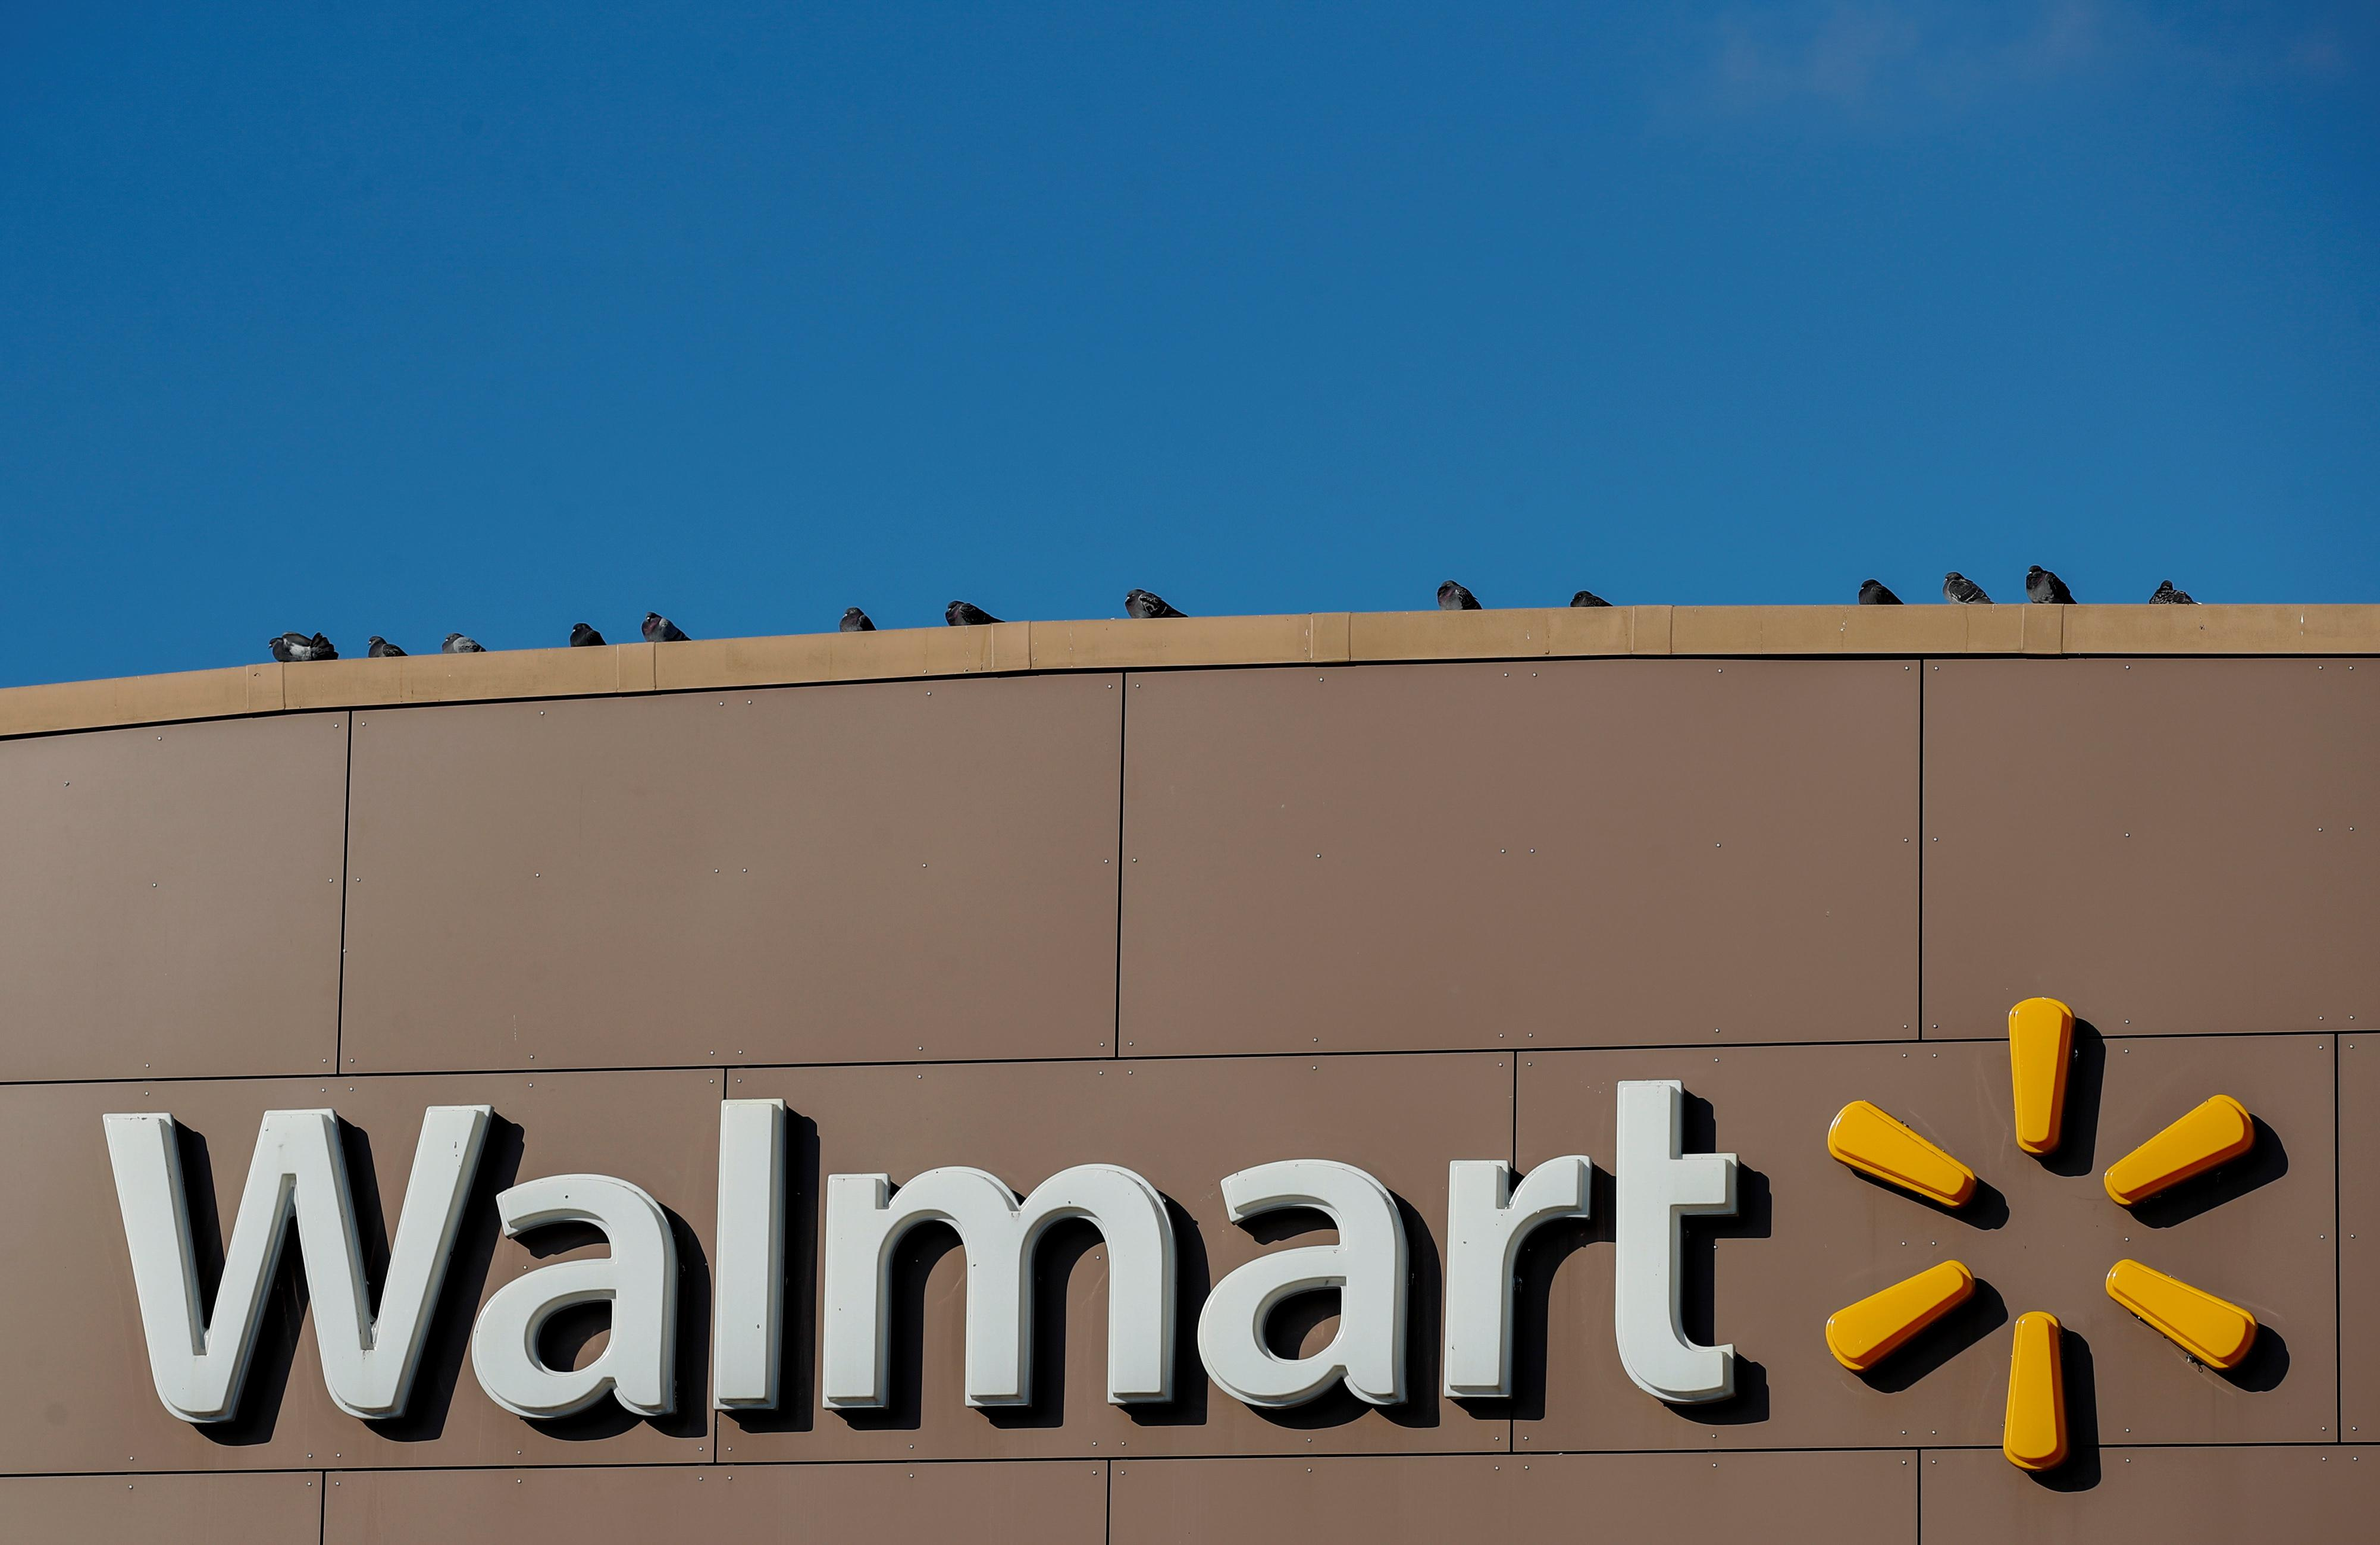 Factbox: Walmart and Tesla fought in private long before solar lawsuit